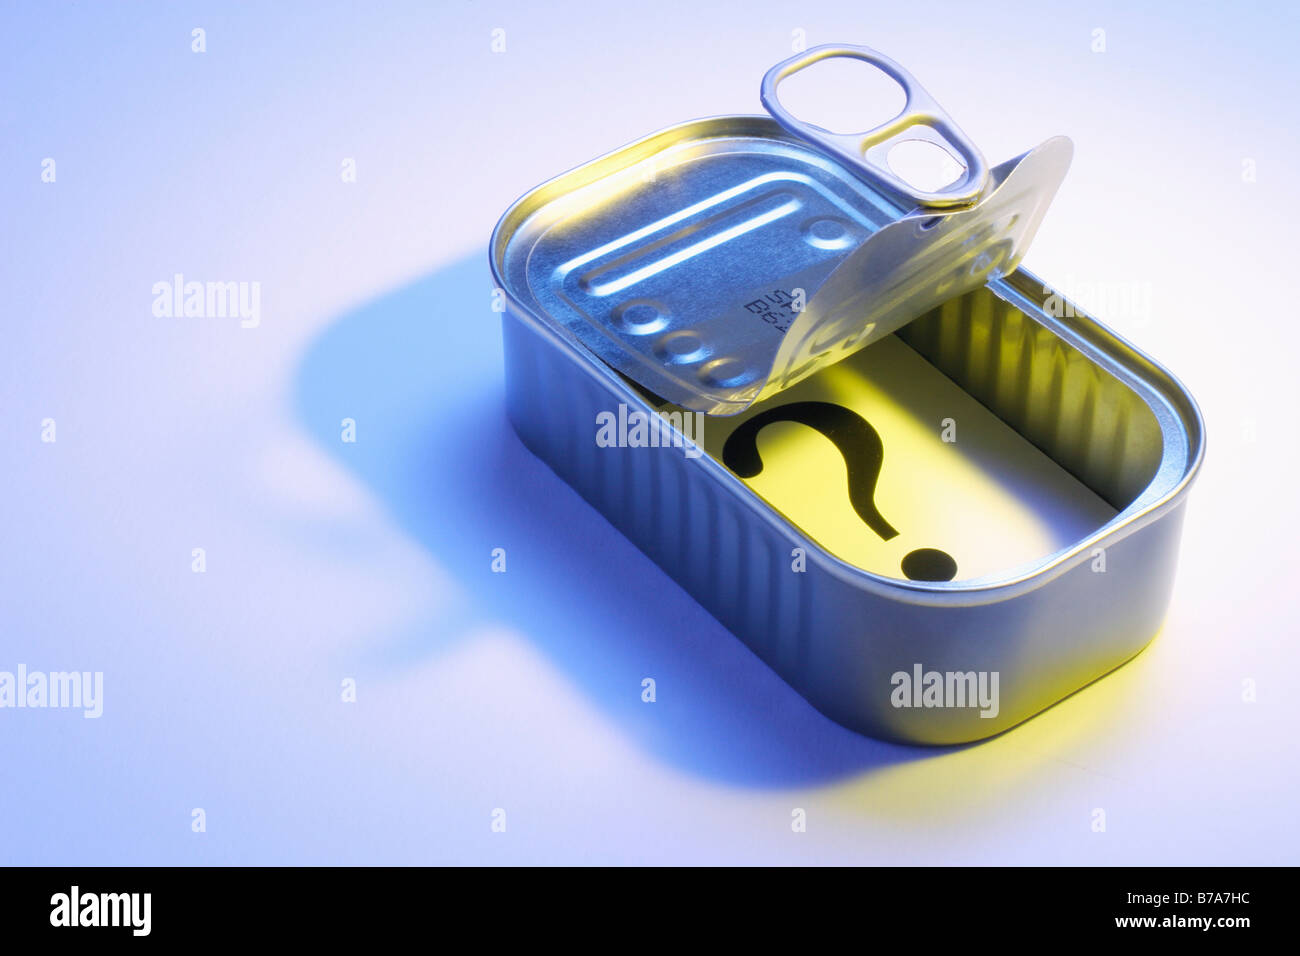 Question mark card in a tin can - Stock Image